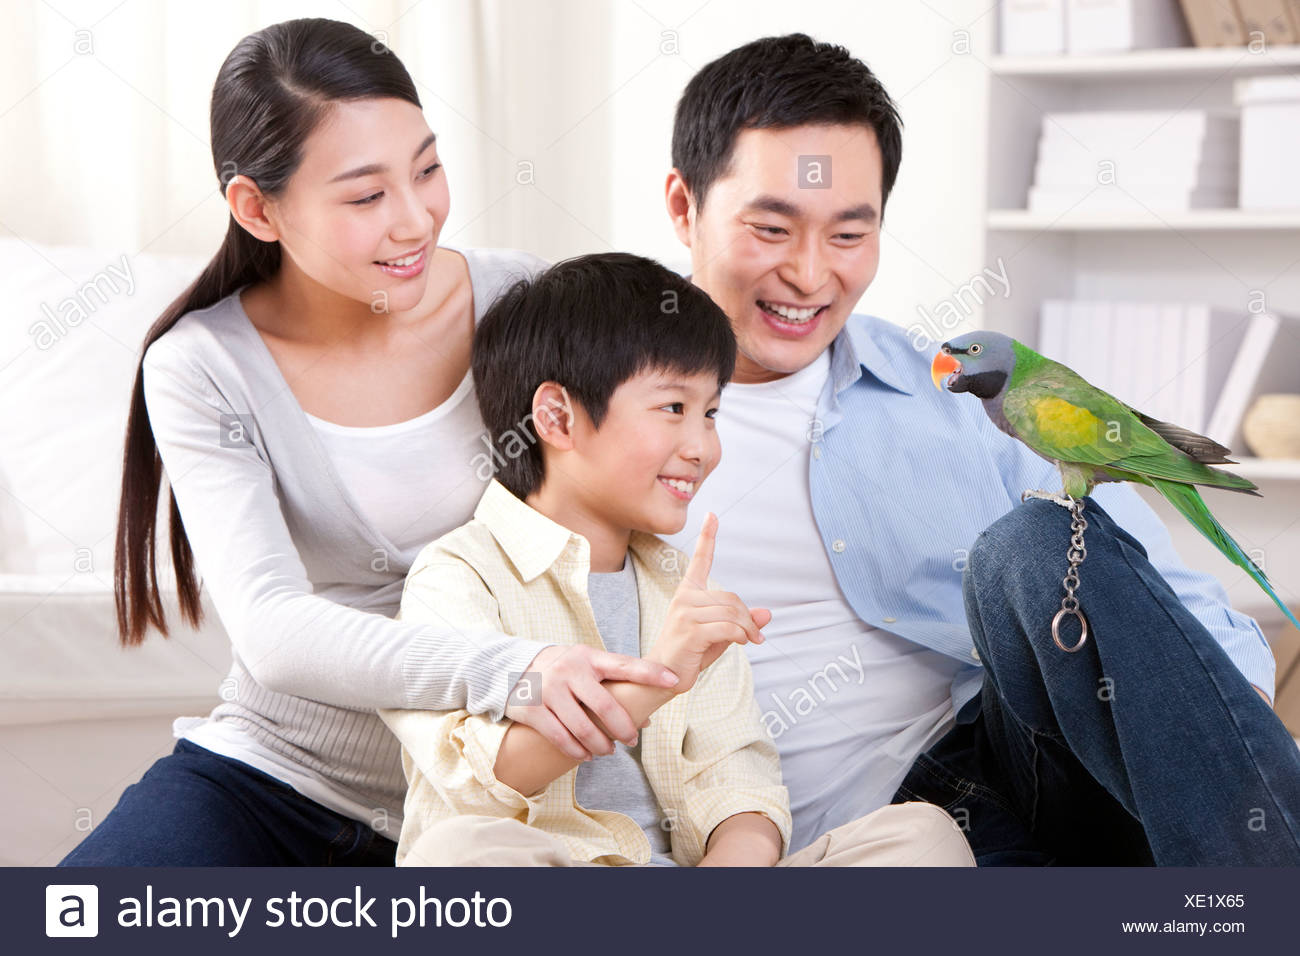 Family playing with a pet parrot Stock Photo